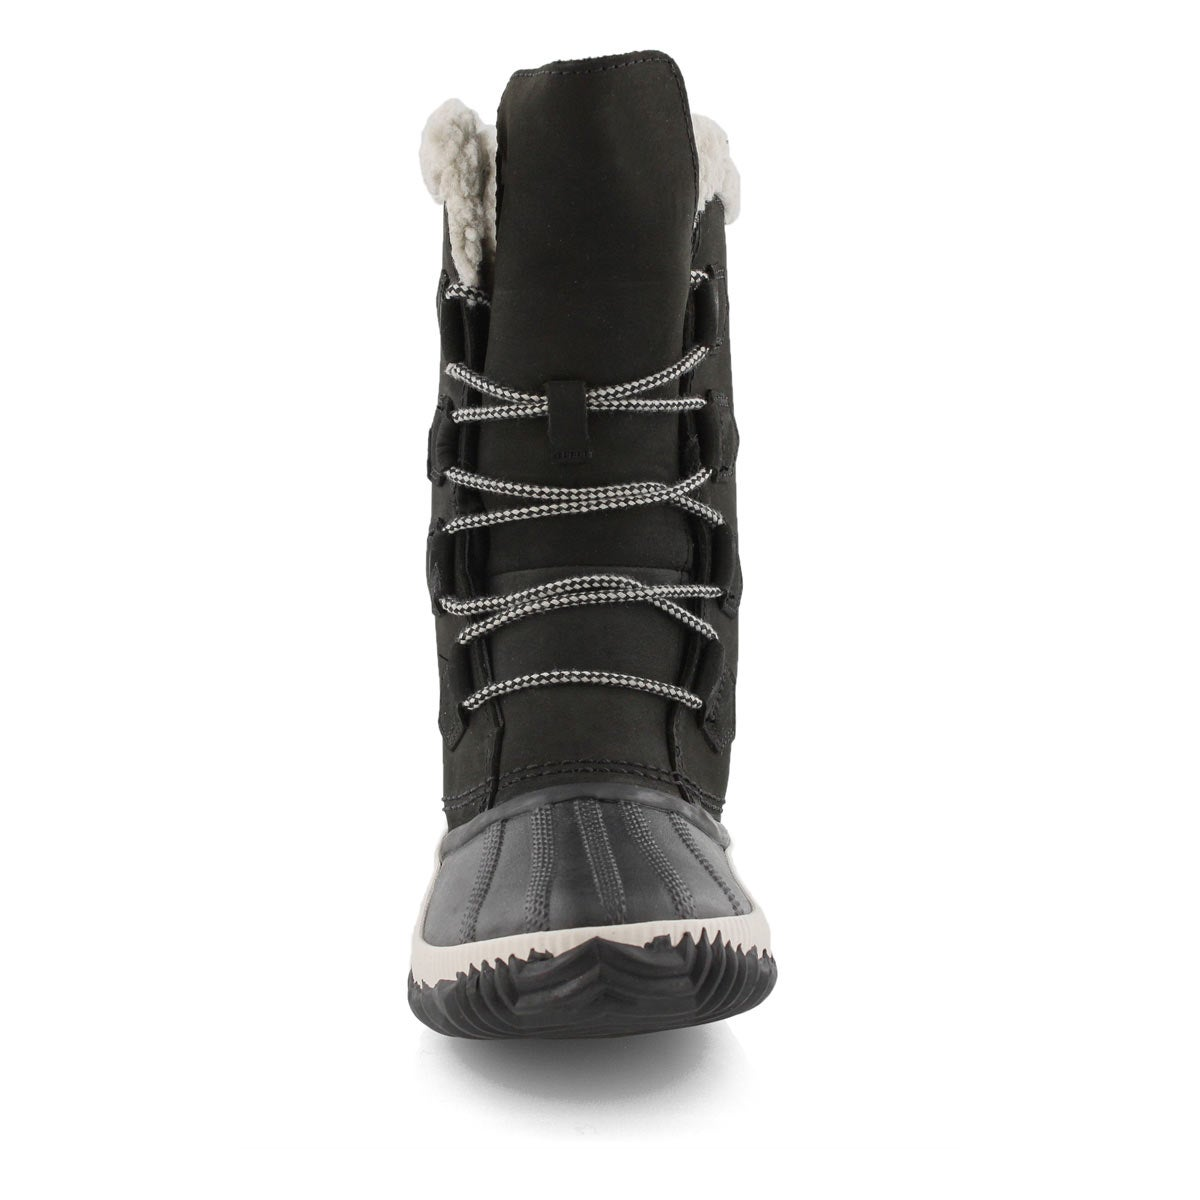 Lds Out'N About Plus Tall blk wtrpf boot